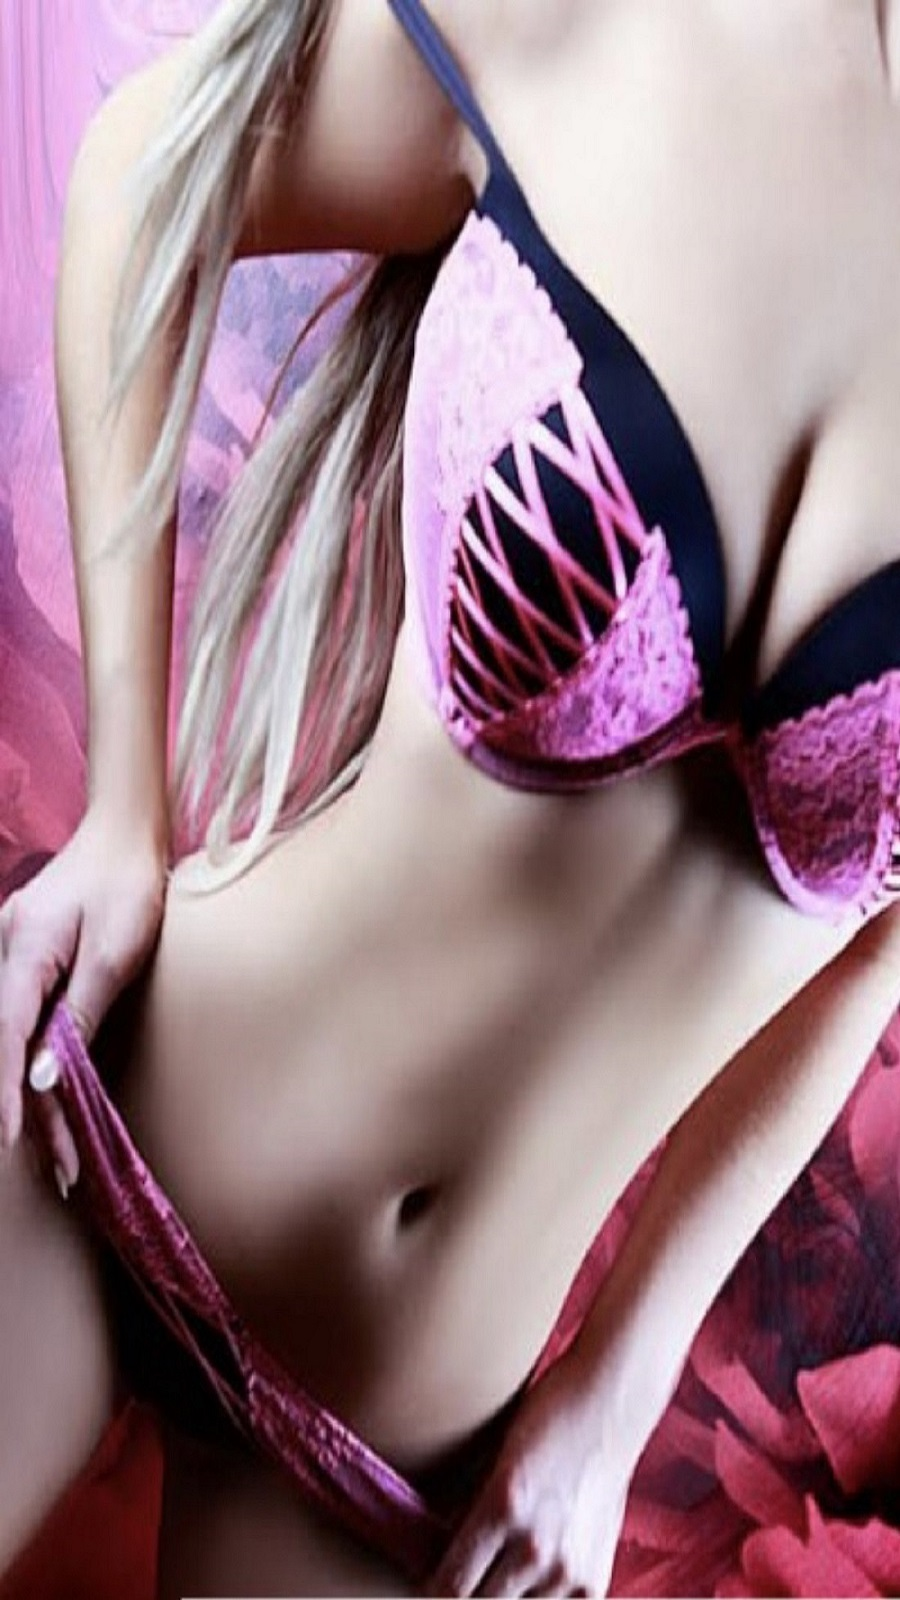 If you are looking for the perfect companion tonight give us a call on 07412621234 to book Laura for the best night of your life.